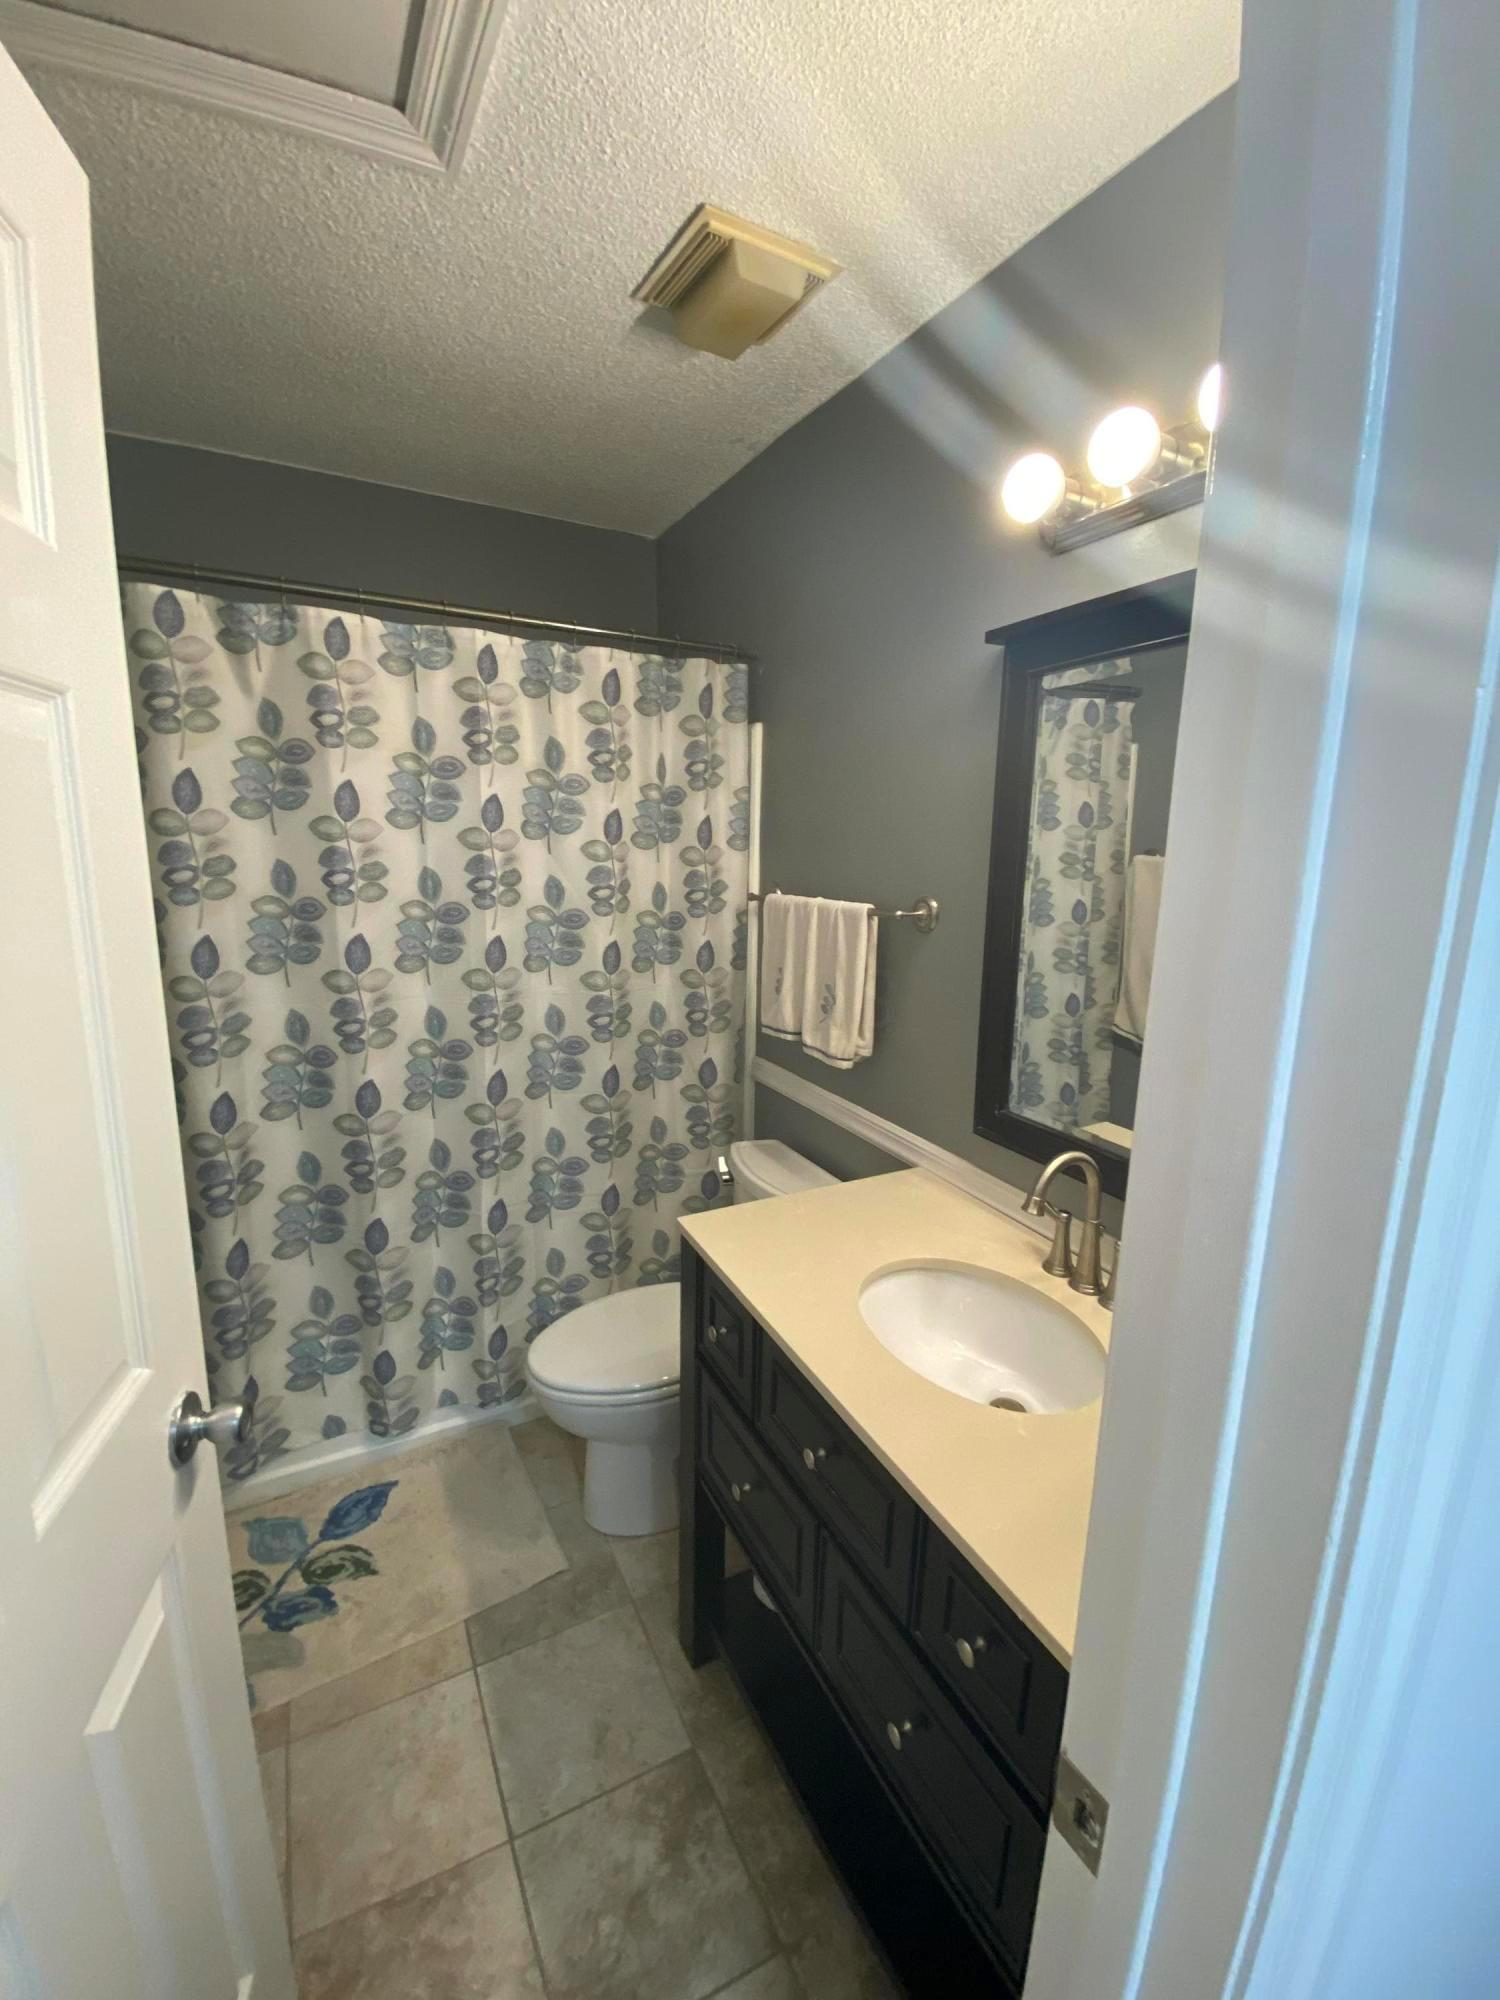 2561 Gardenia Drive, Columbus, Ohio 43235, 2 Bedrooms Bedrooms, ,2 BathroomsBathrooms,Residential,For Sale,Gardenia,220031004